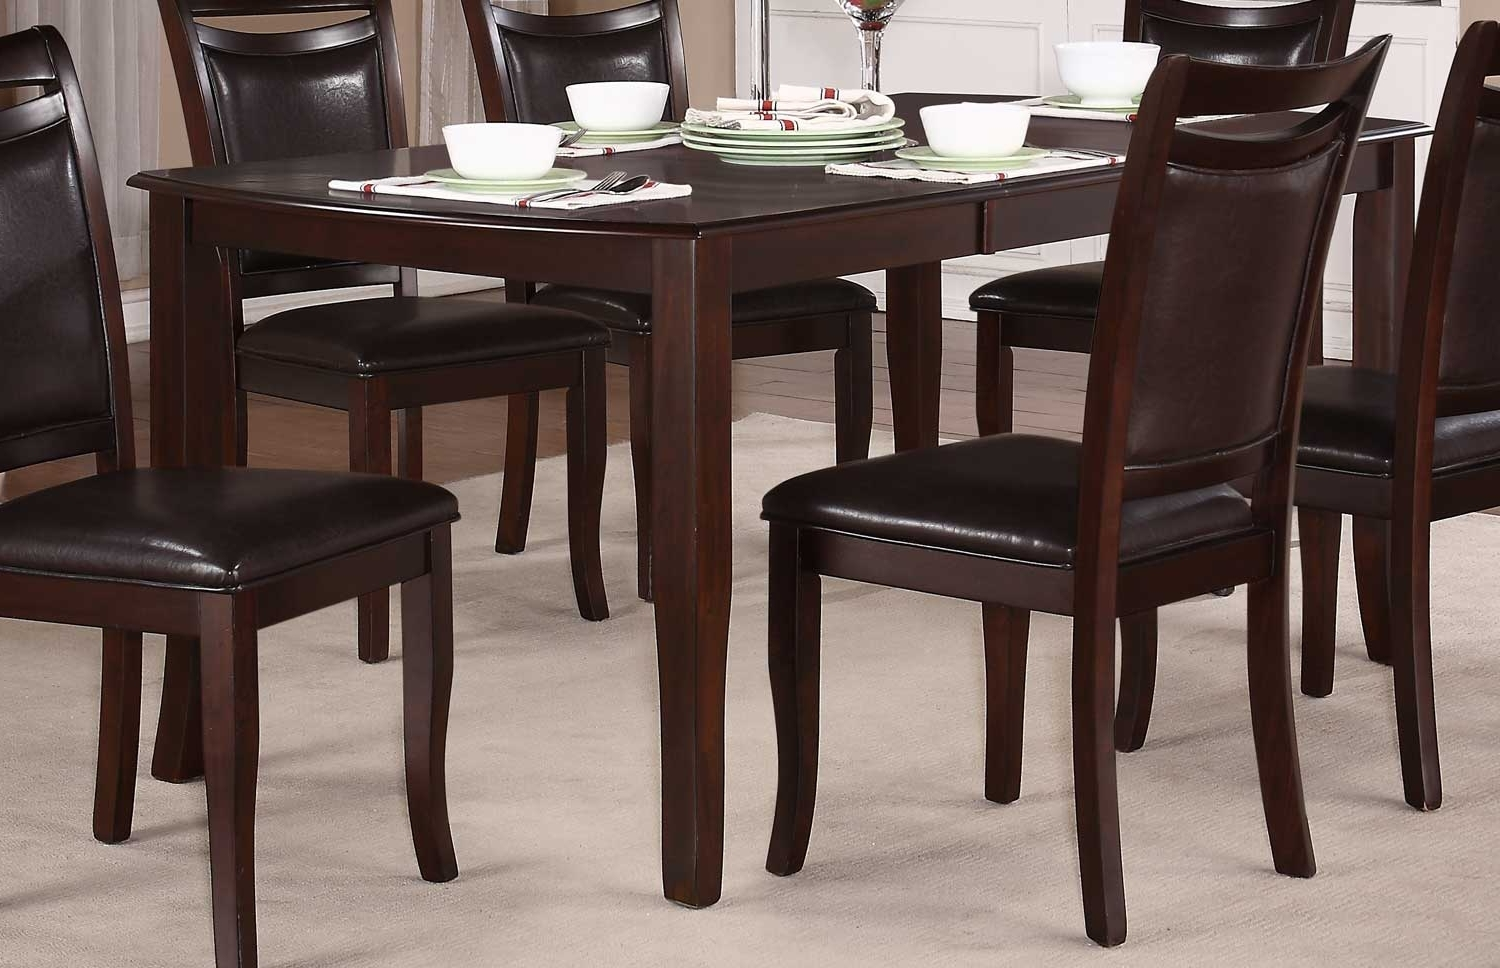 Homelegance Maeve Dining Table – Dark Cherry 2547 72 Intended For Popular Dark Dining Tables (View 10 of 25)